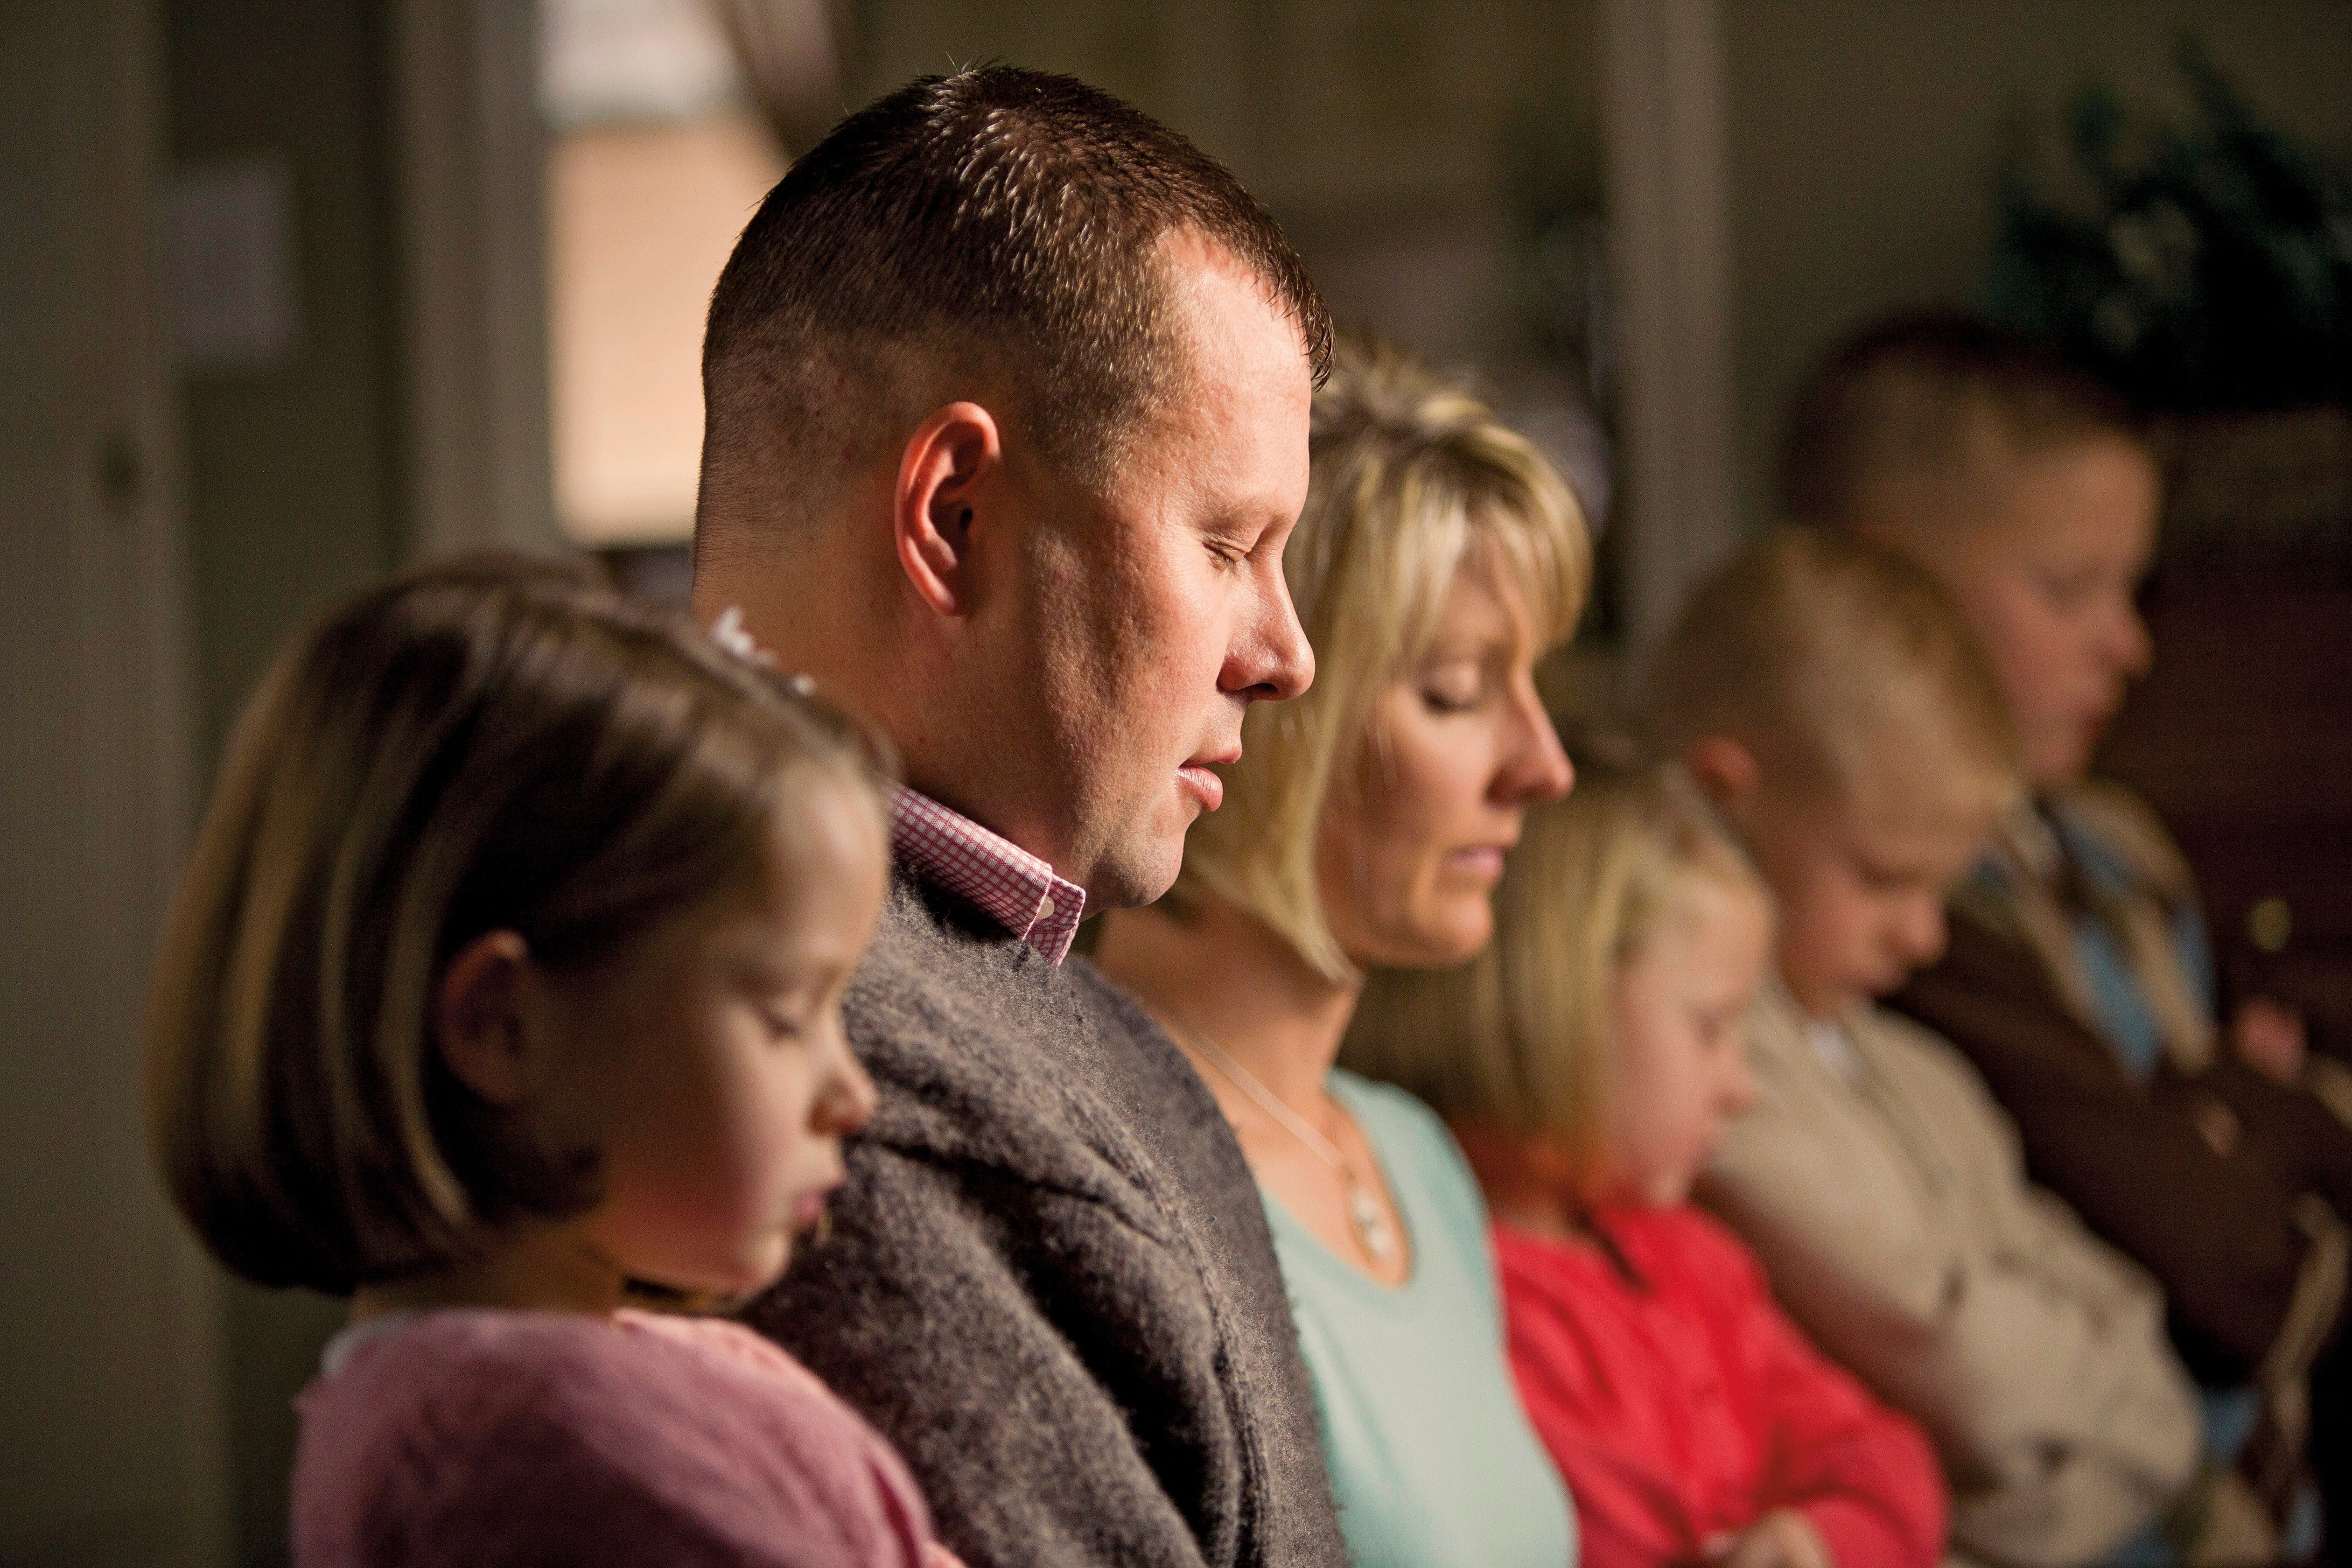 A father prays with his family.